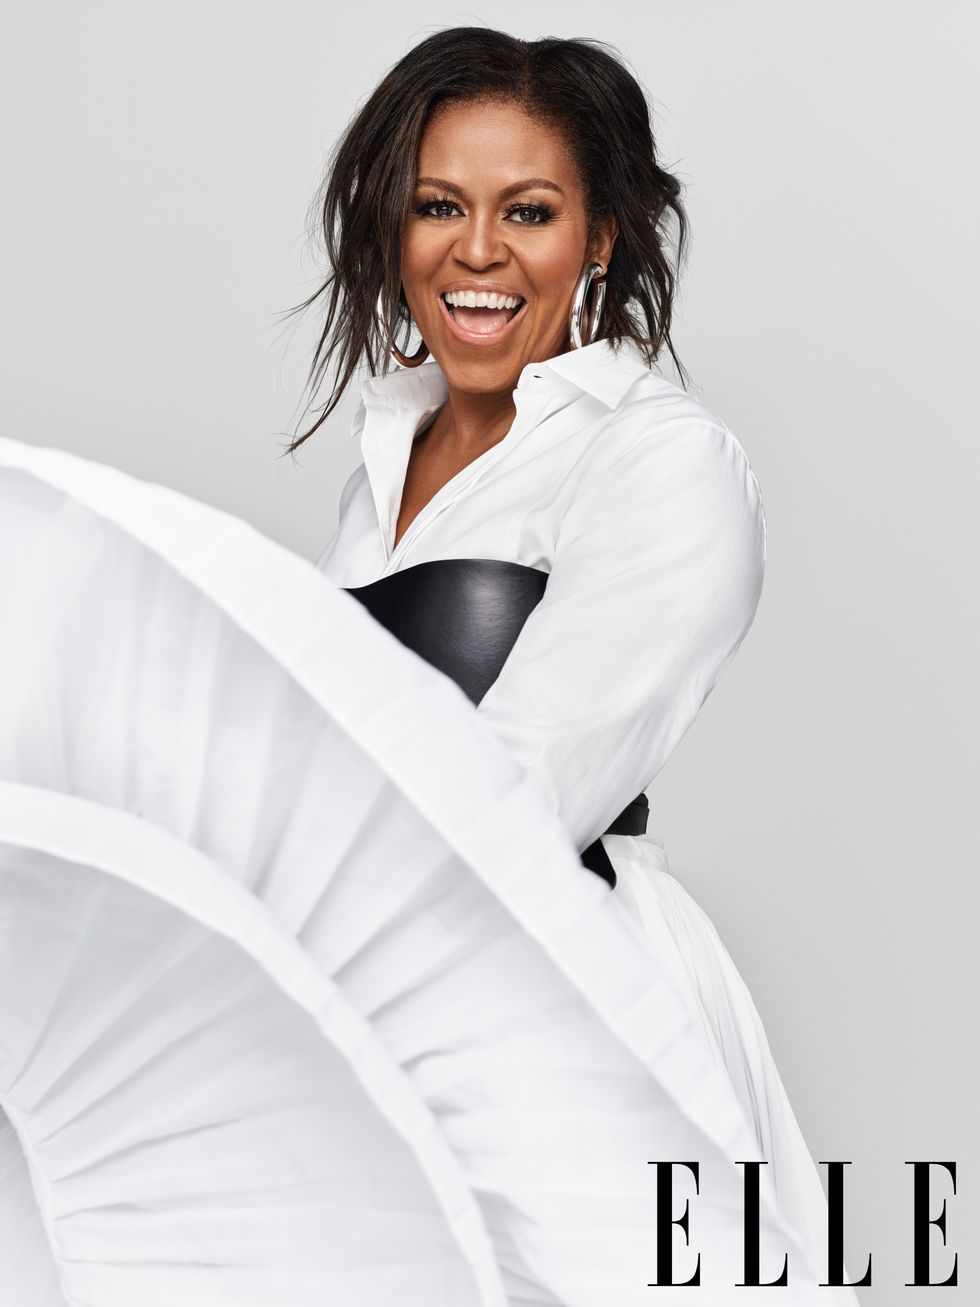 Michelle+Obama+ELLE+US+December+2018+(1).jpg